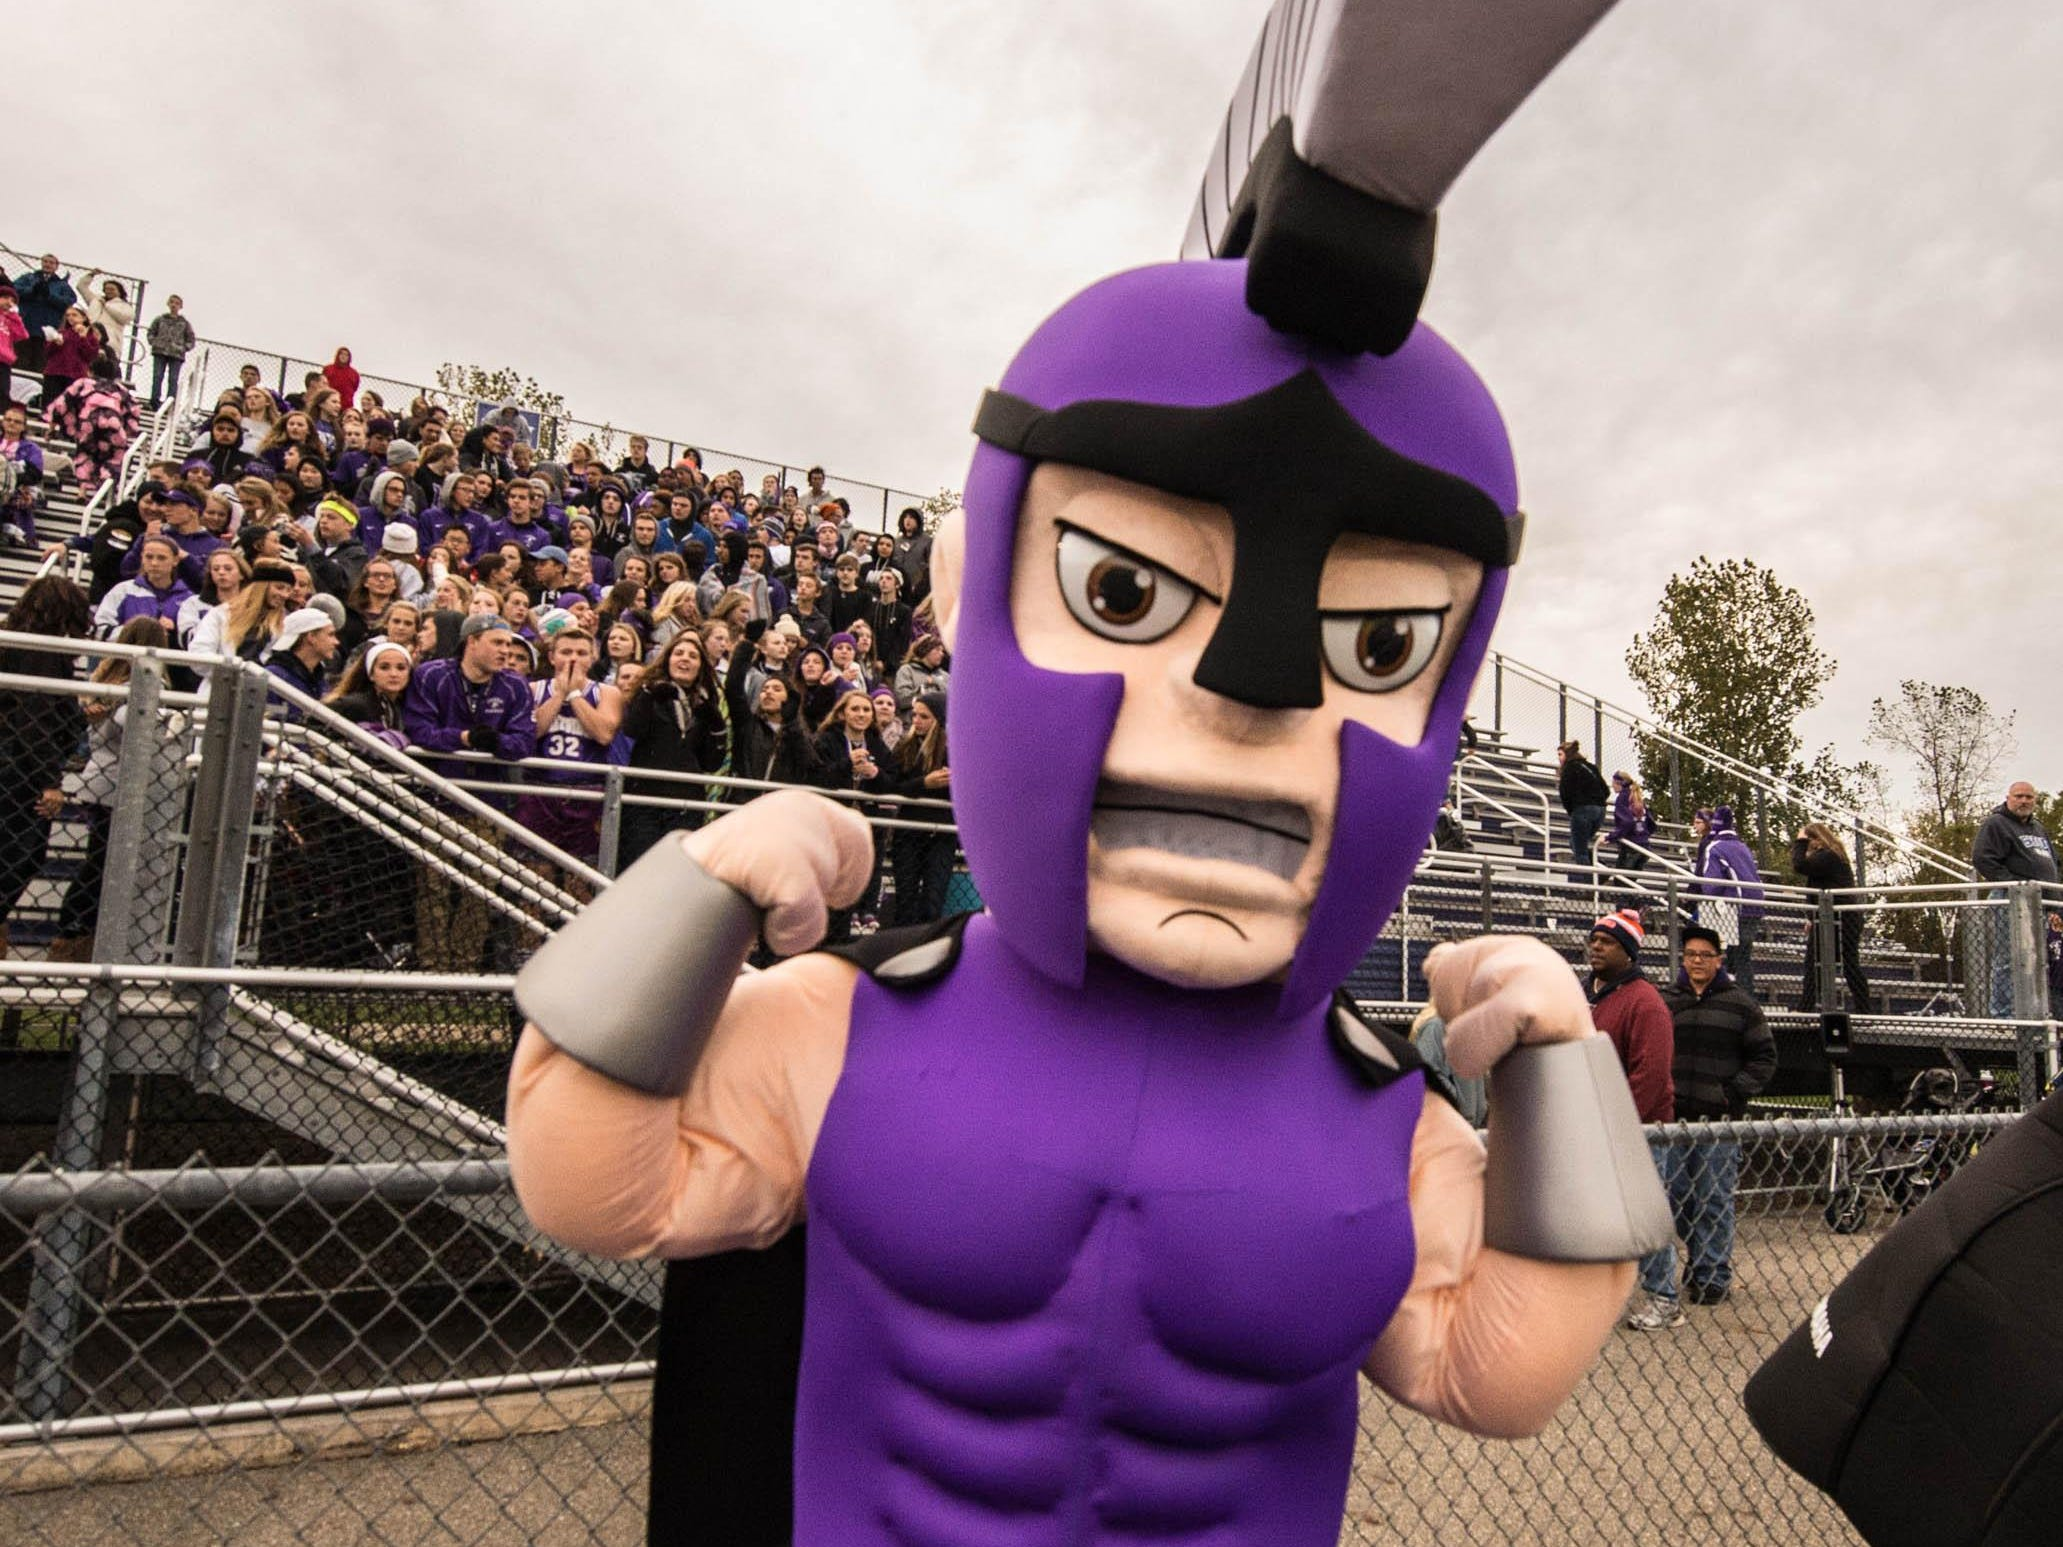 Lakeview's mascot at Friday evening game.